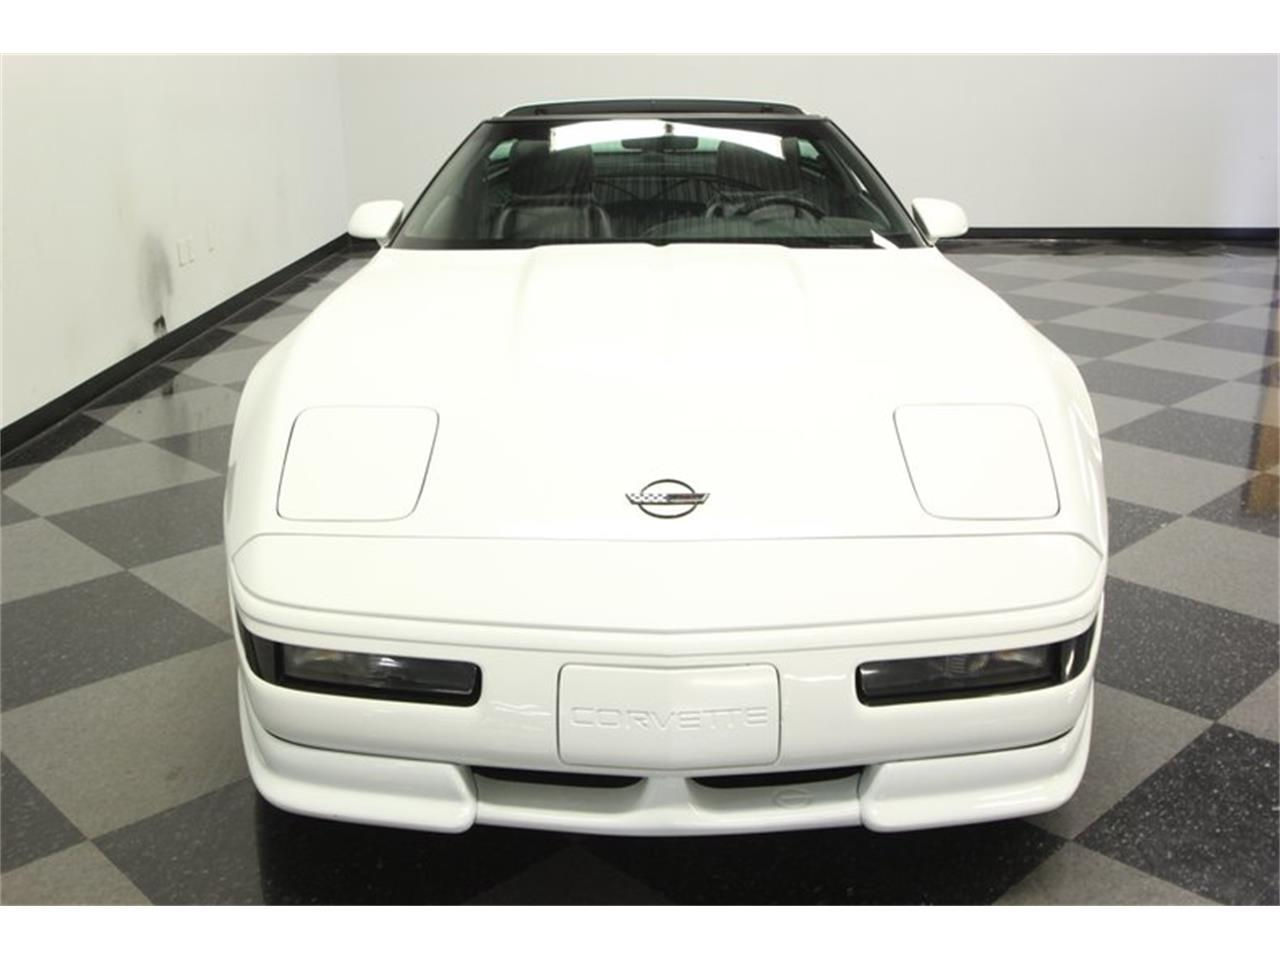 Large Picture of 1993 Chevrolet Corvette located in Florida - $14,995.00 Offered by Streetside Classics - Tampa - P3IH